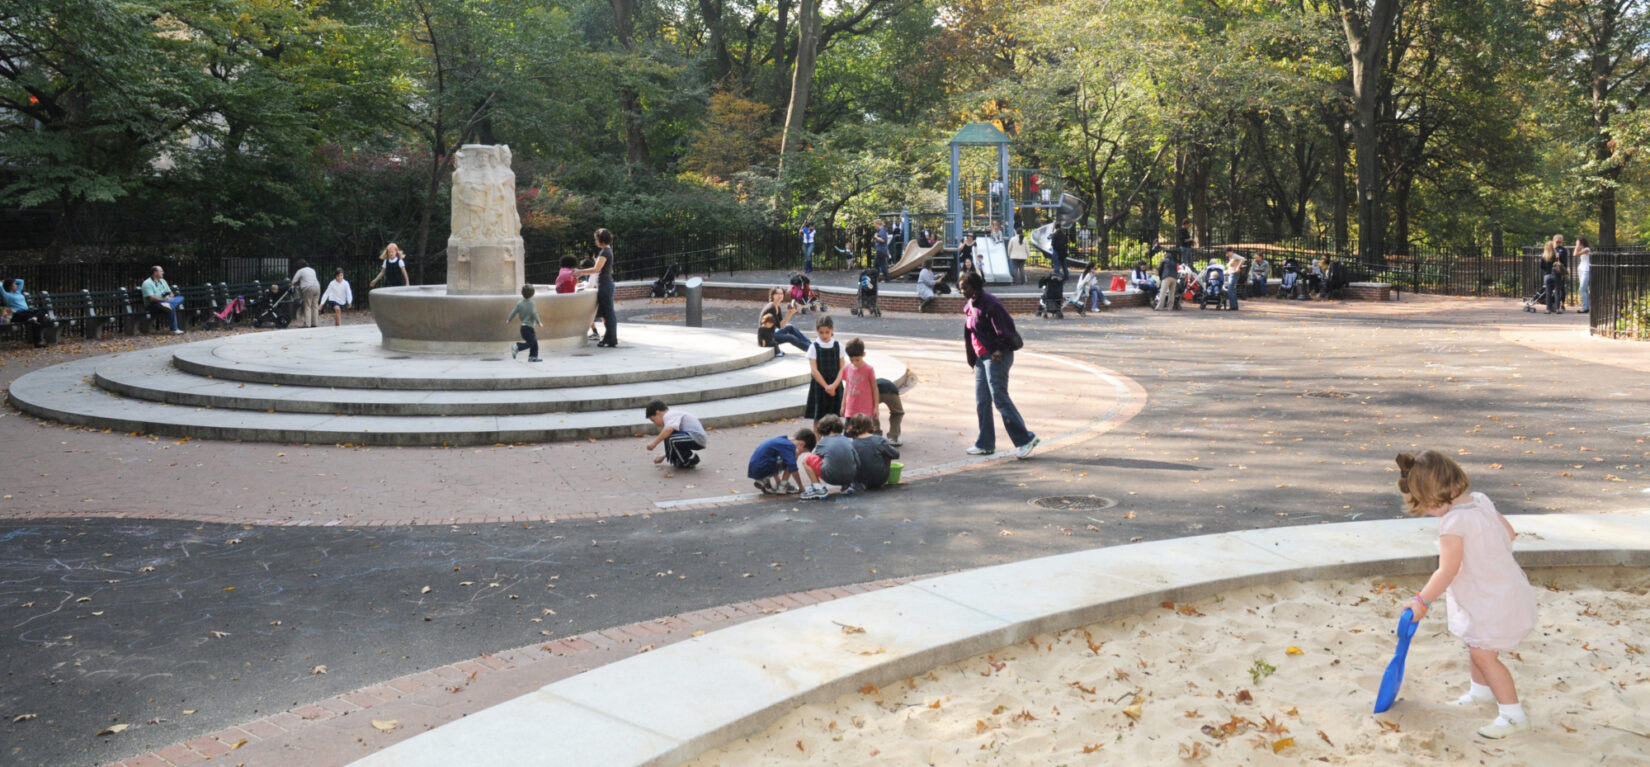 Children enjoying the fountain feature of the playground